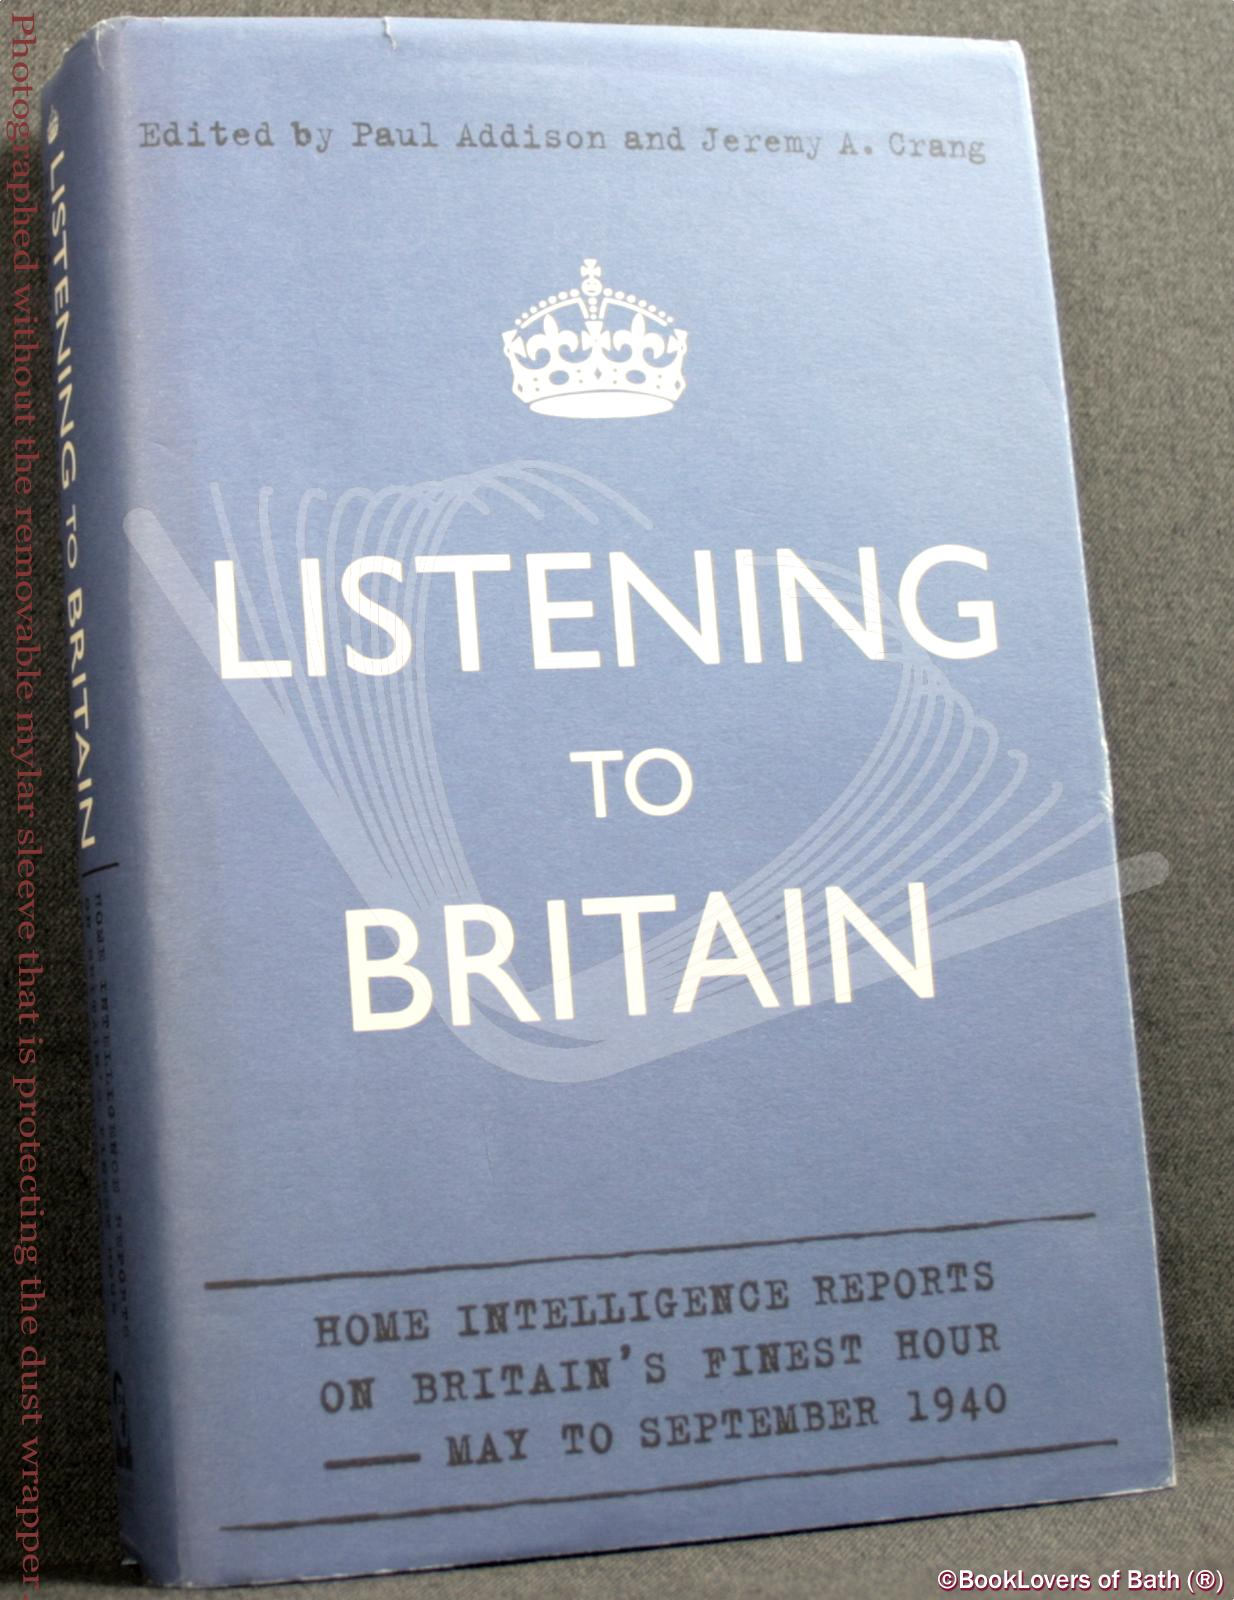 Listening to Britain: Home Intelligence Reports on Britain's Finest Hour - May to September 1940 - Edited by Paul Addison & Jeremy A. Crang